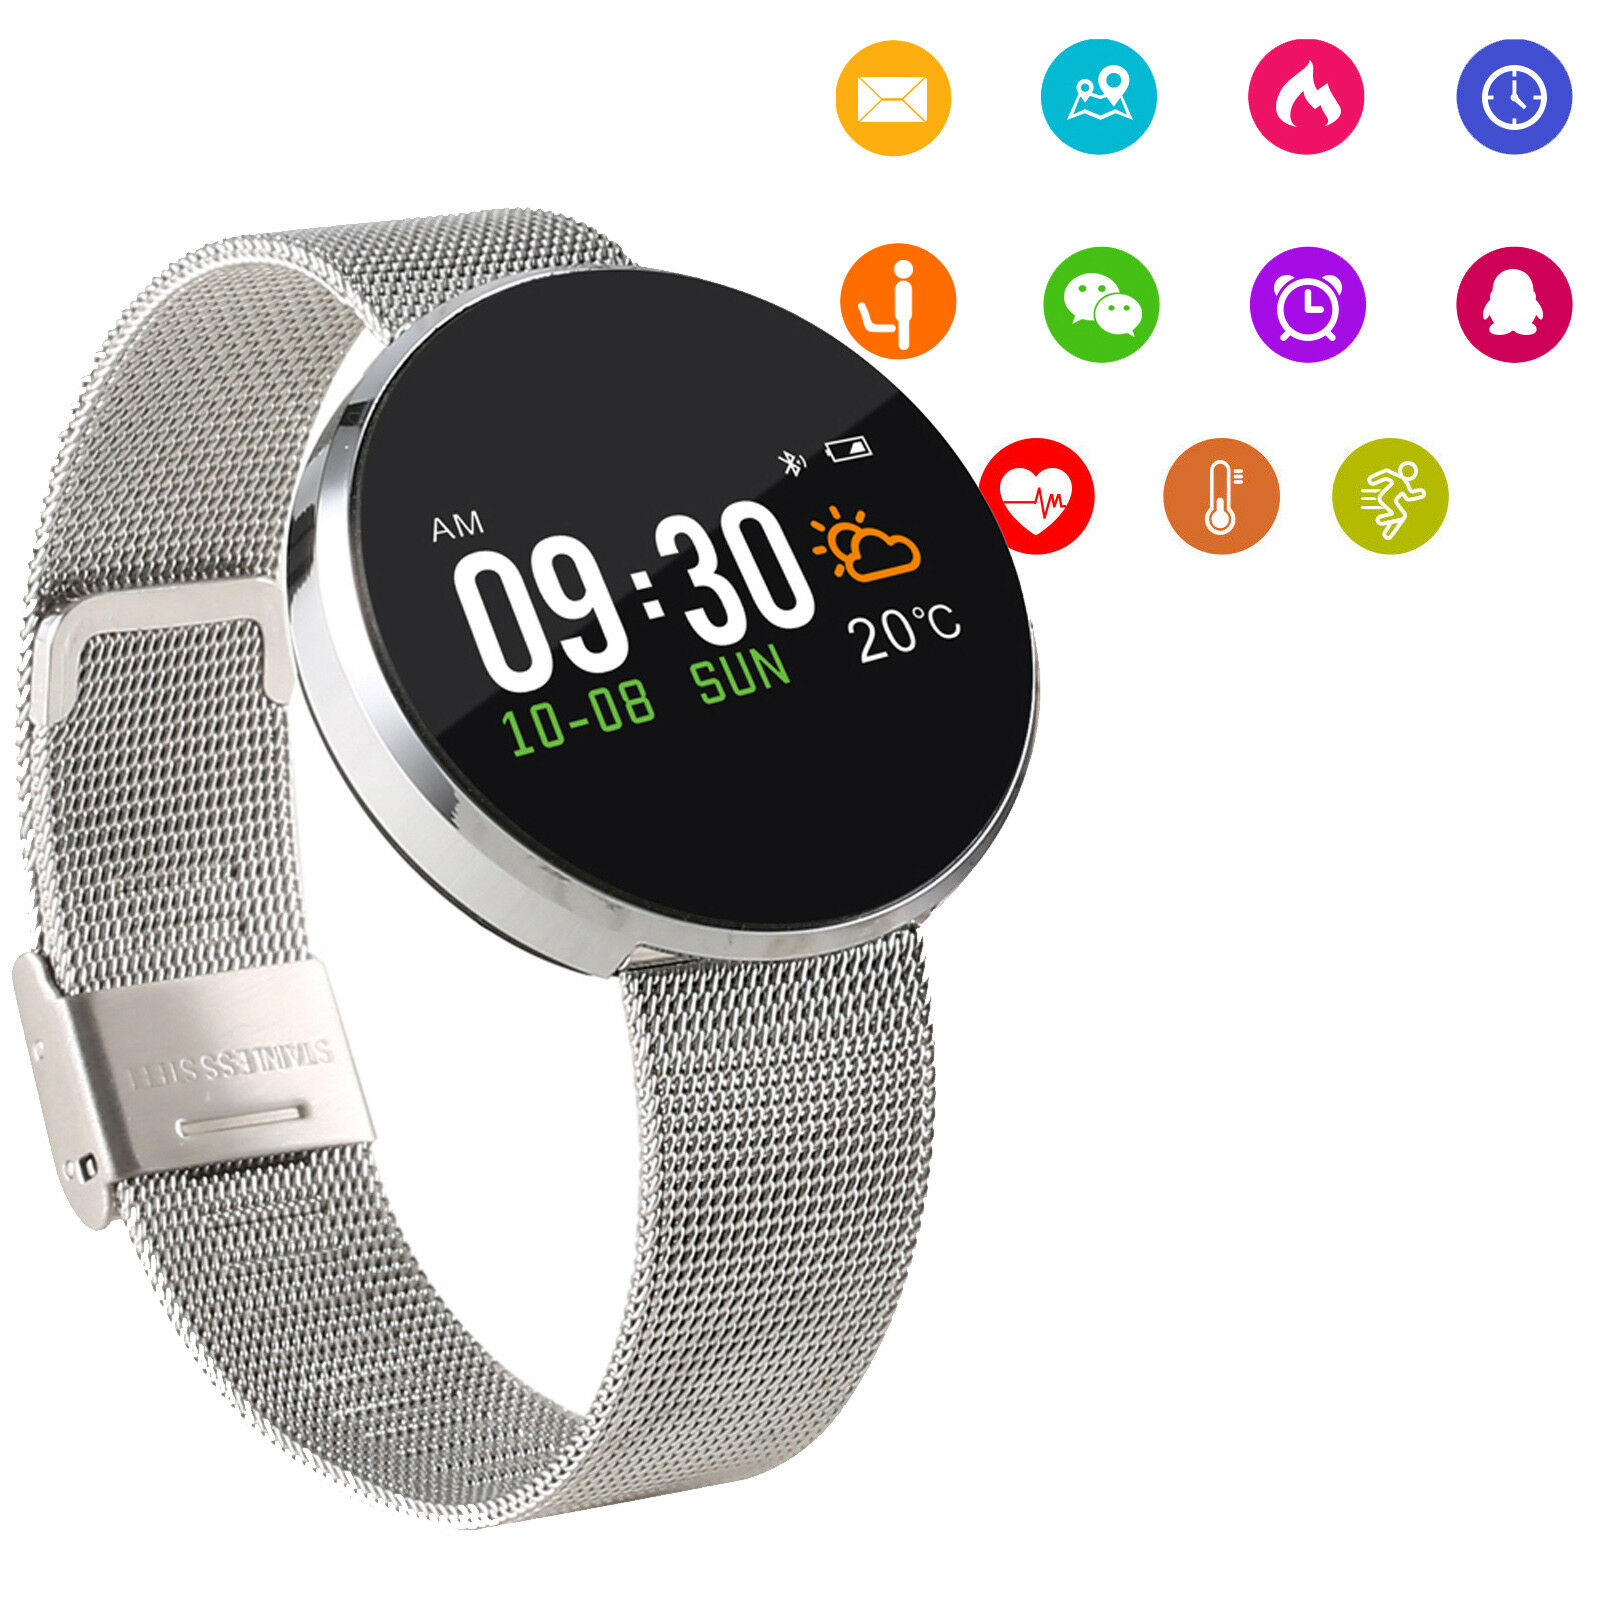 UPC 216752997899 product image for Bluetooth Smart Watch Heart Rate Smartwatch Call Reminder For Samsung S10 S9 S8 | upcitemdb.com